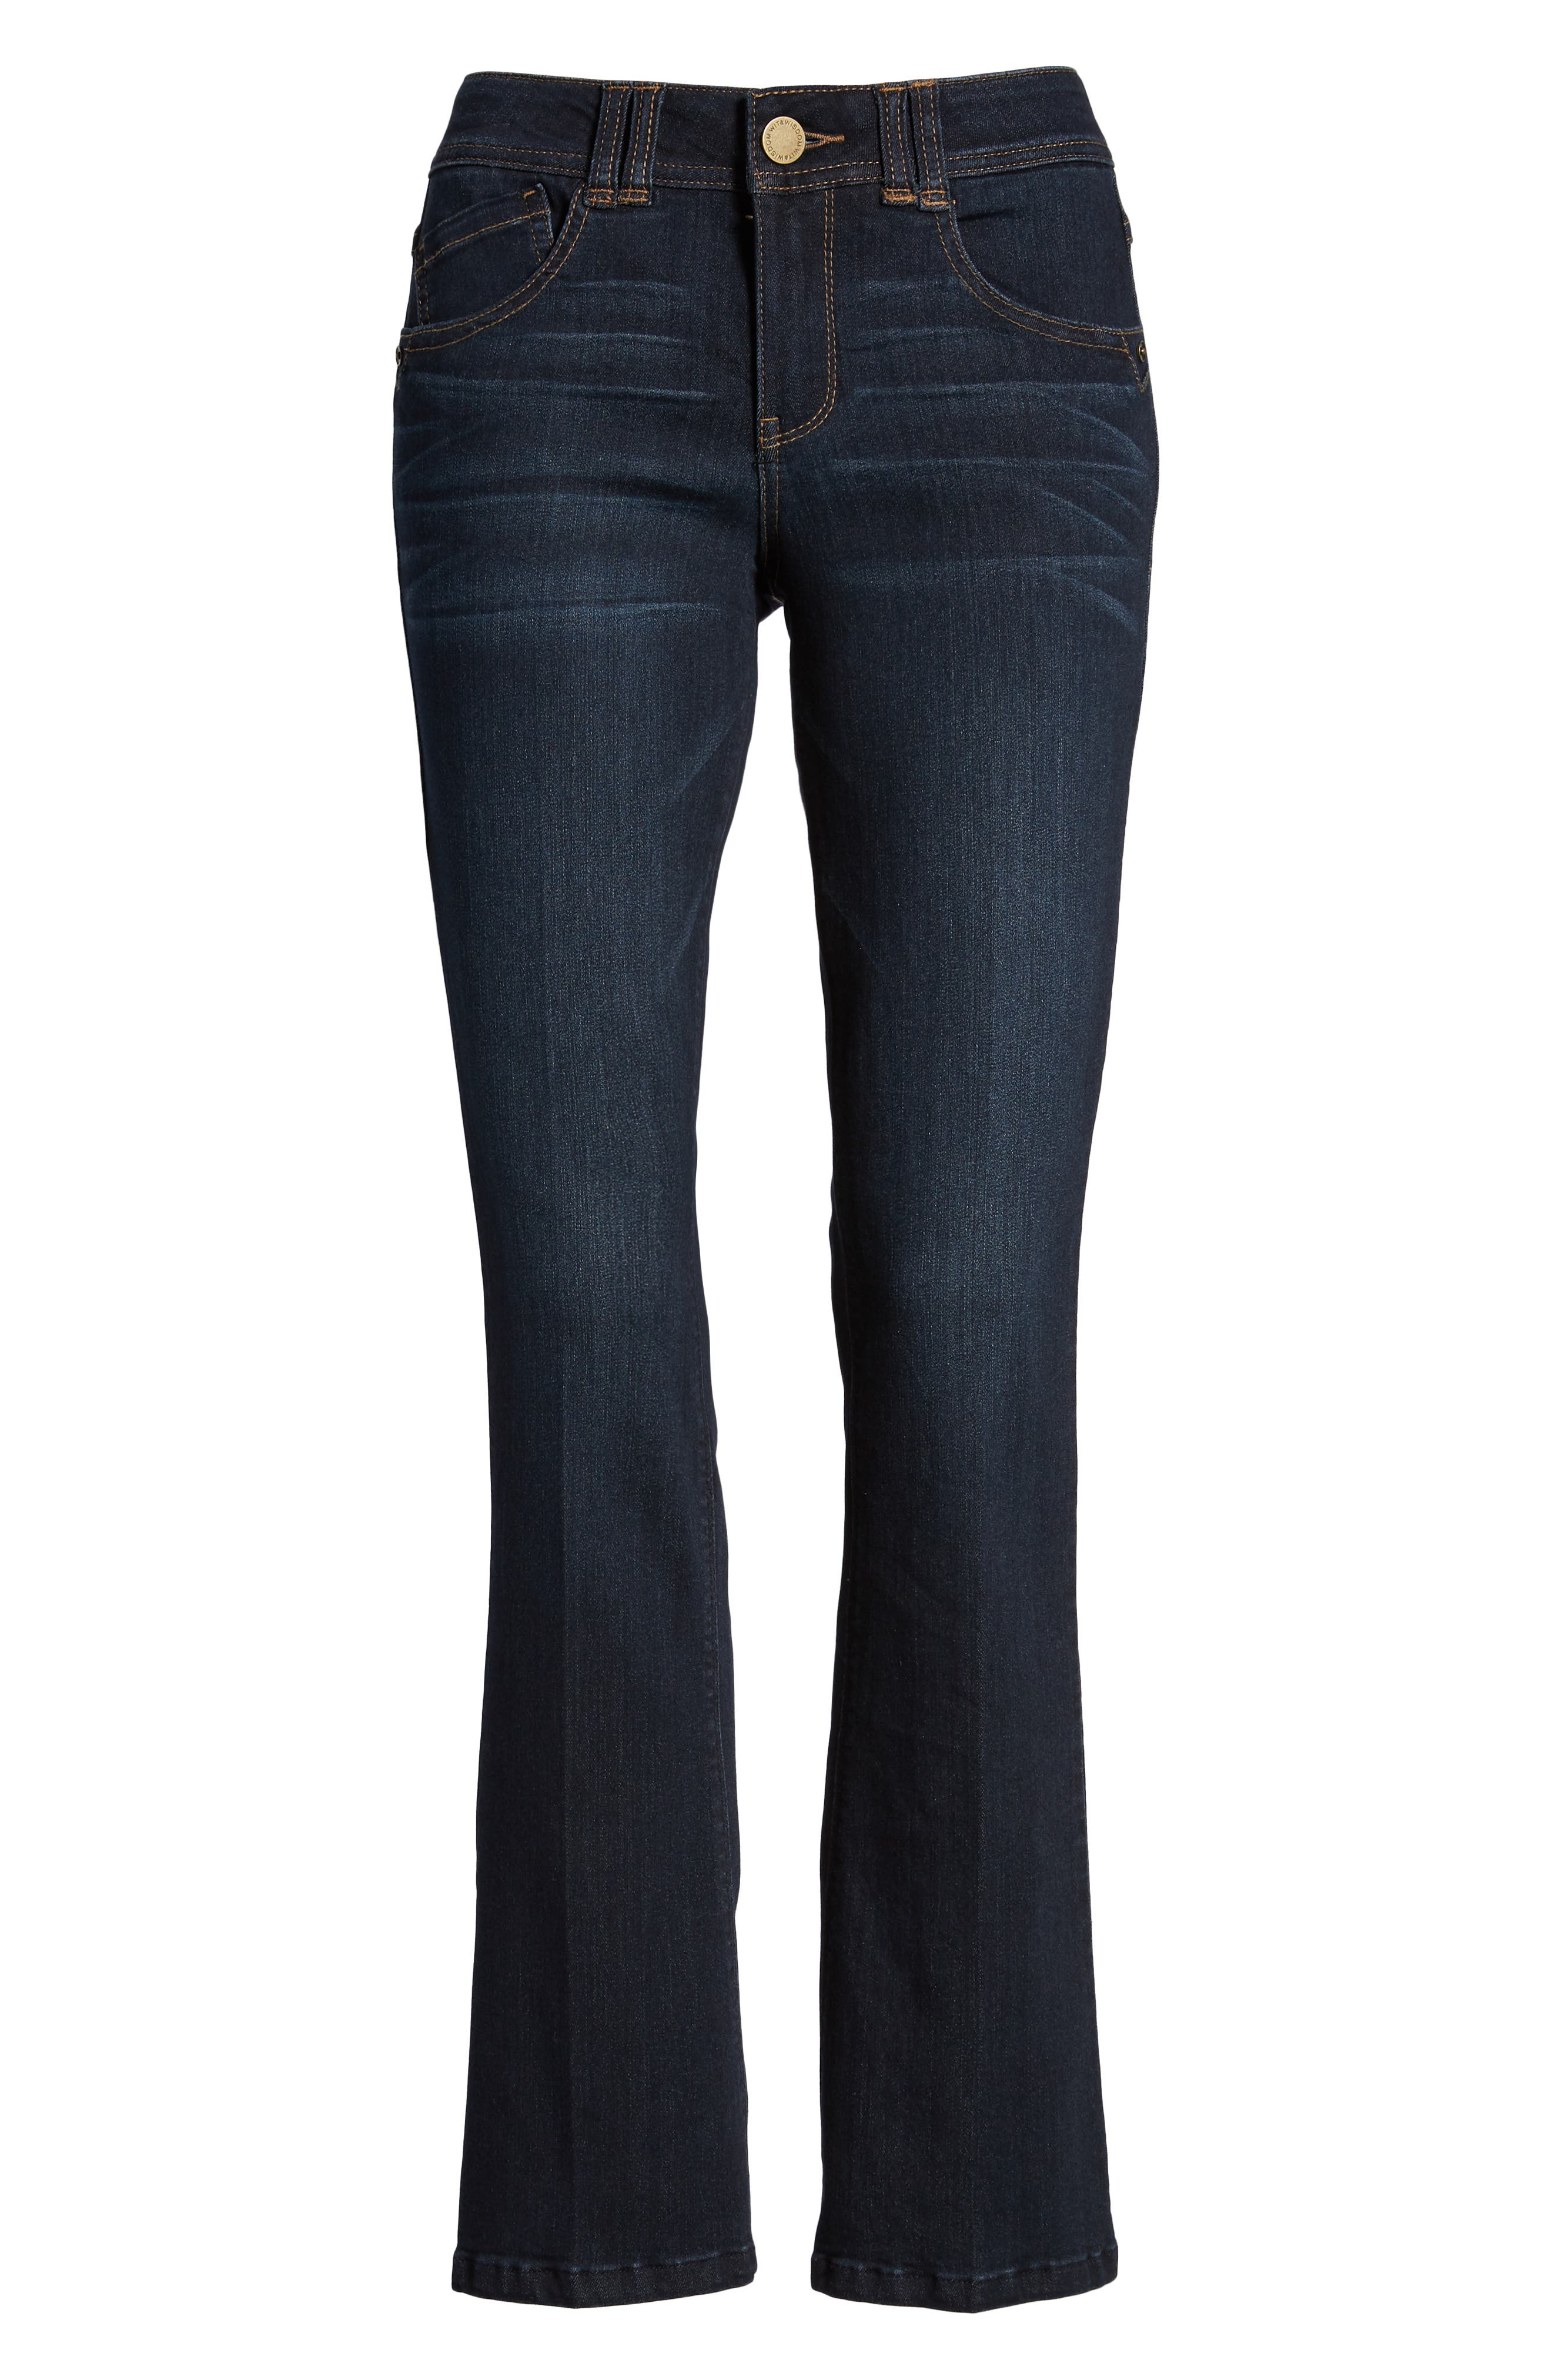 Ab-solution Itty Bitty Bootcut Jeans,                             Alternate thumbnail 7, color,                             IN-INDIGO